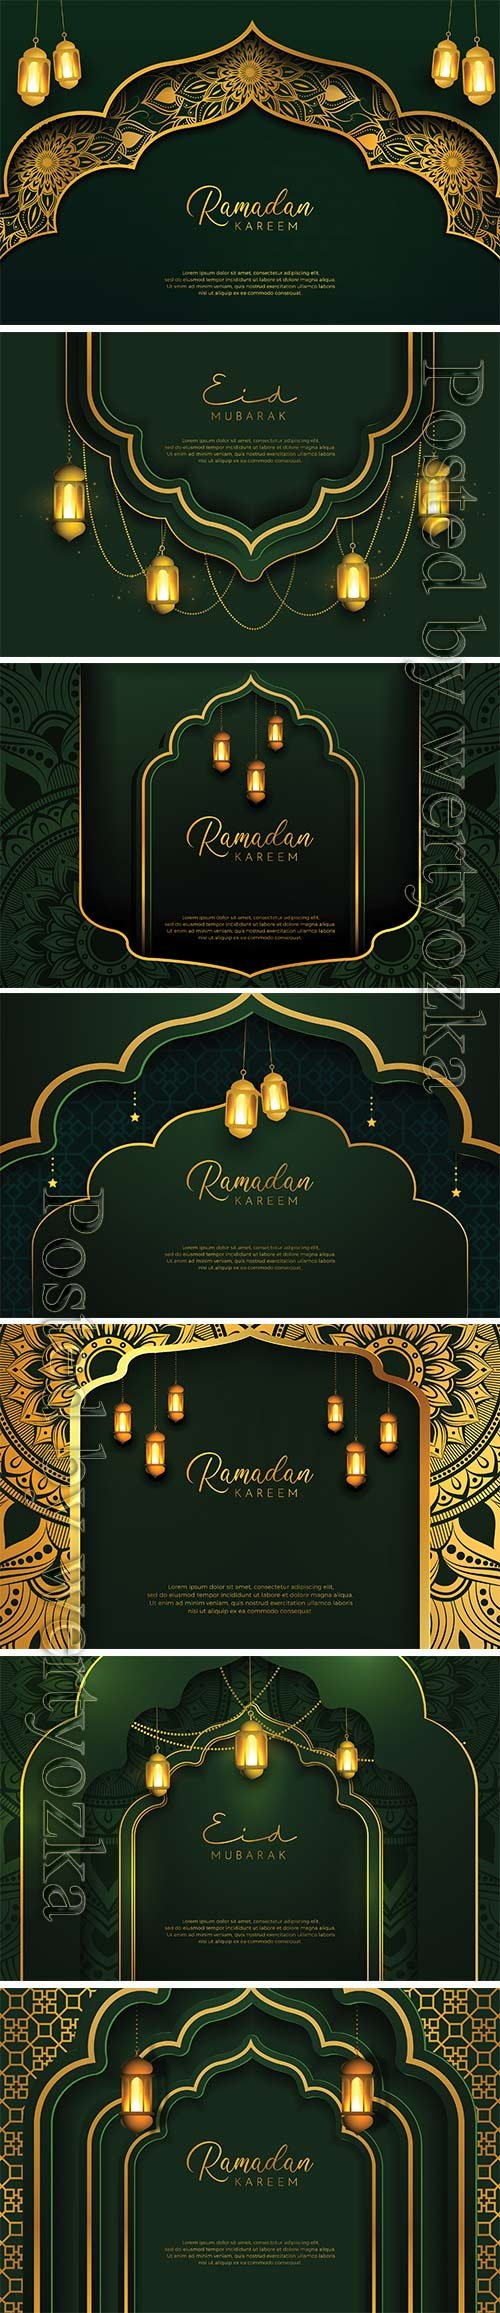 Ramadan Kareem background with gold and green color luxury style